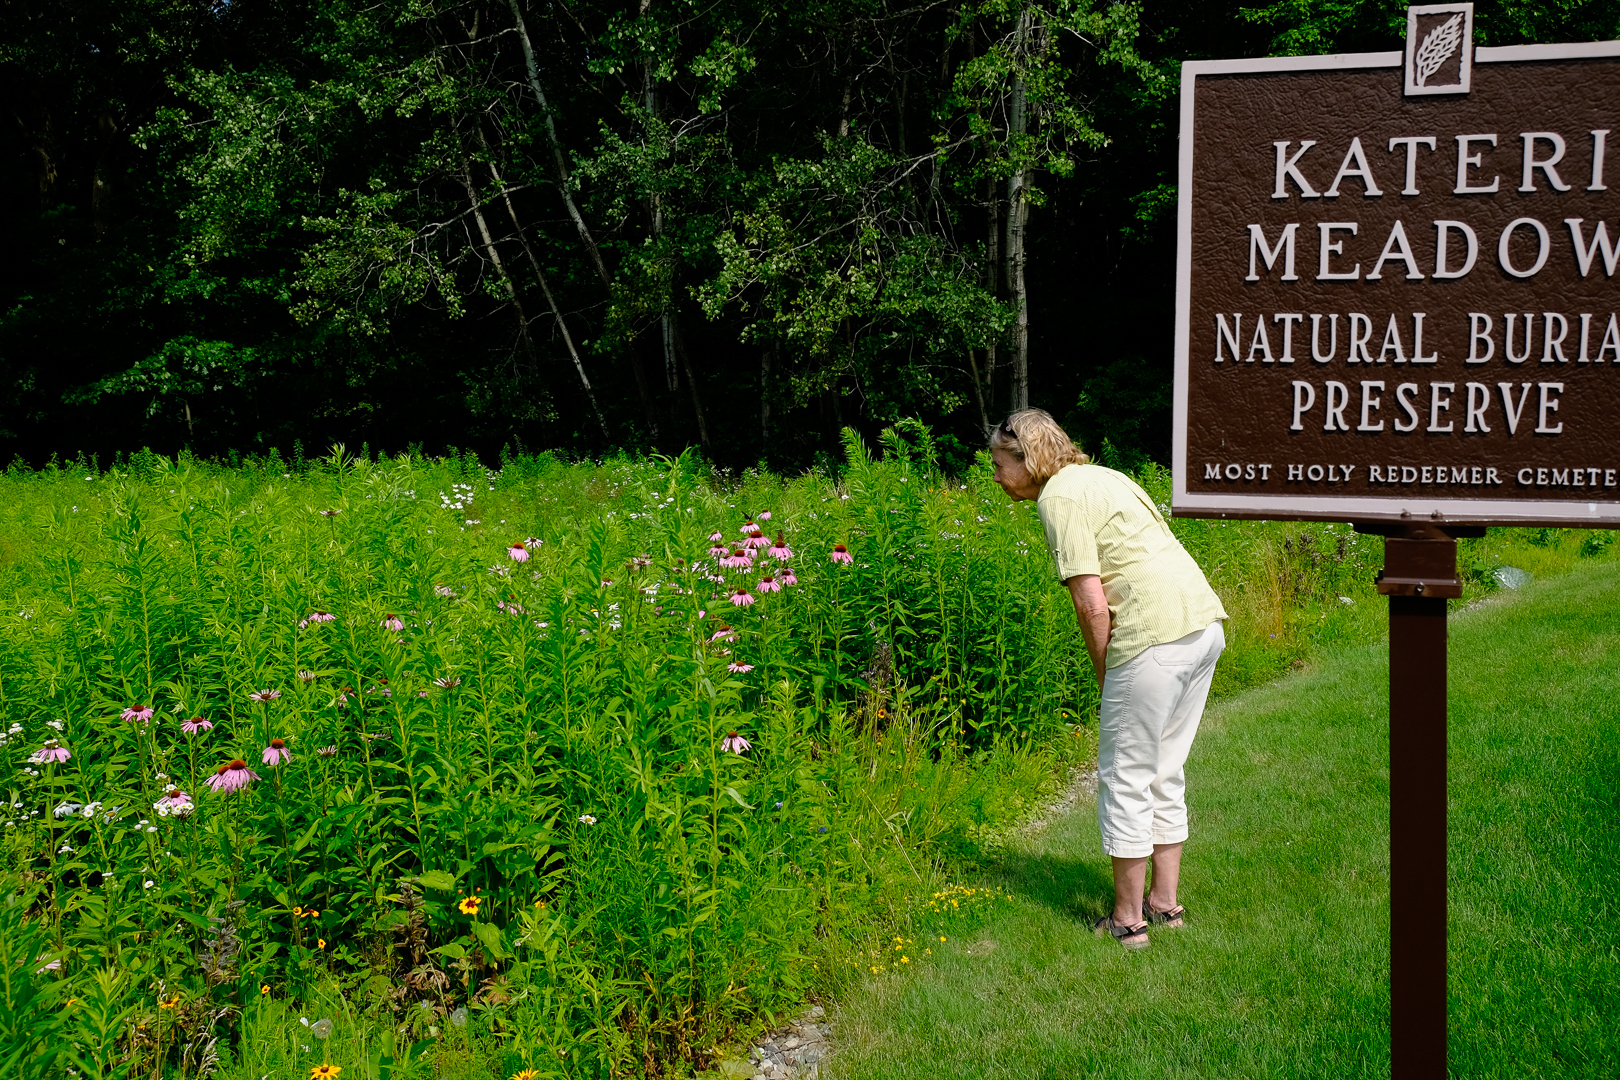 Kateri Meadow Natural Burial Preserve near Schenectady, NY  photo by Tom Bailey